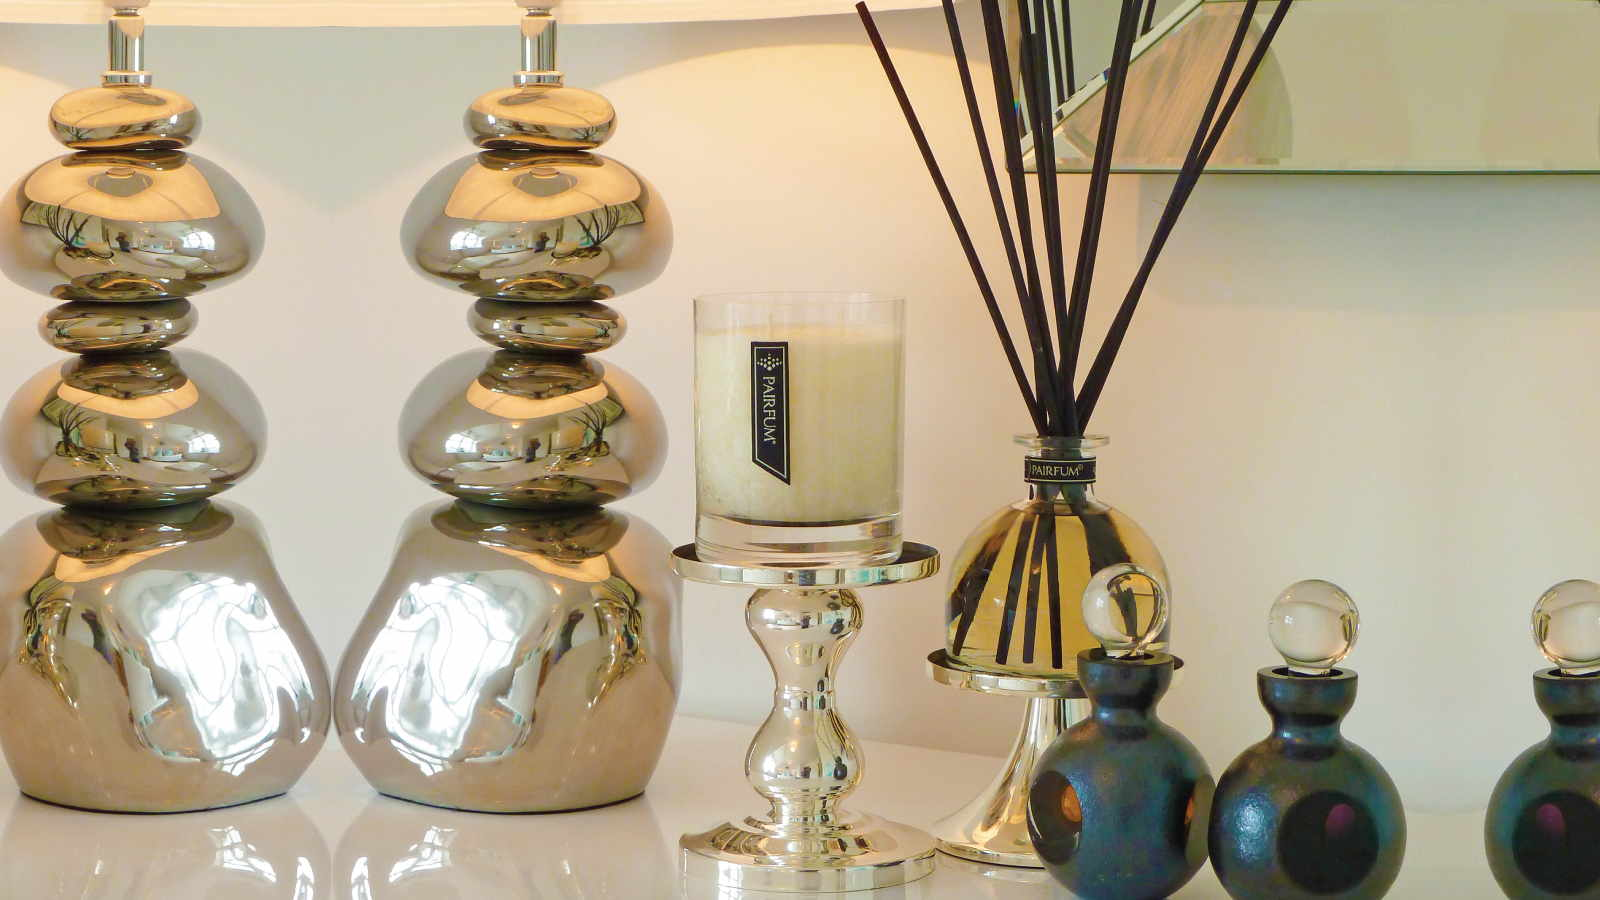 Lifestyle Sideboard Home Fragrance Candle Reed Diffuser 16 9